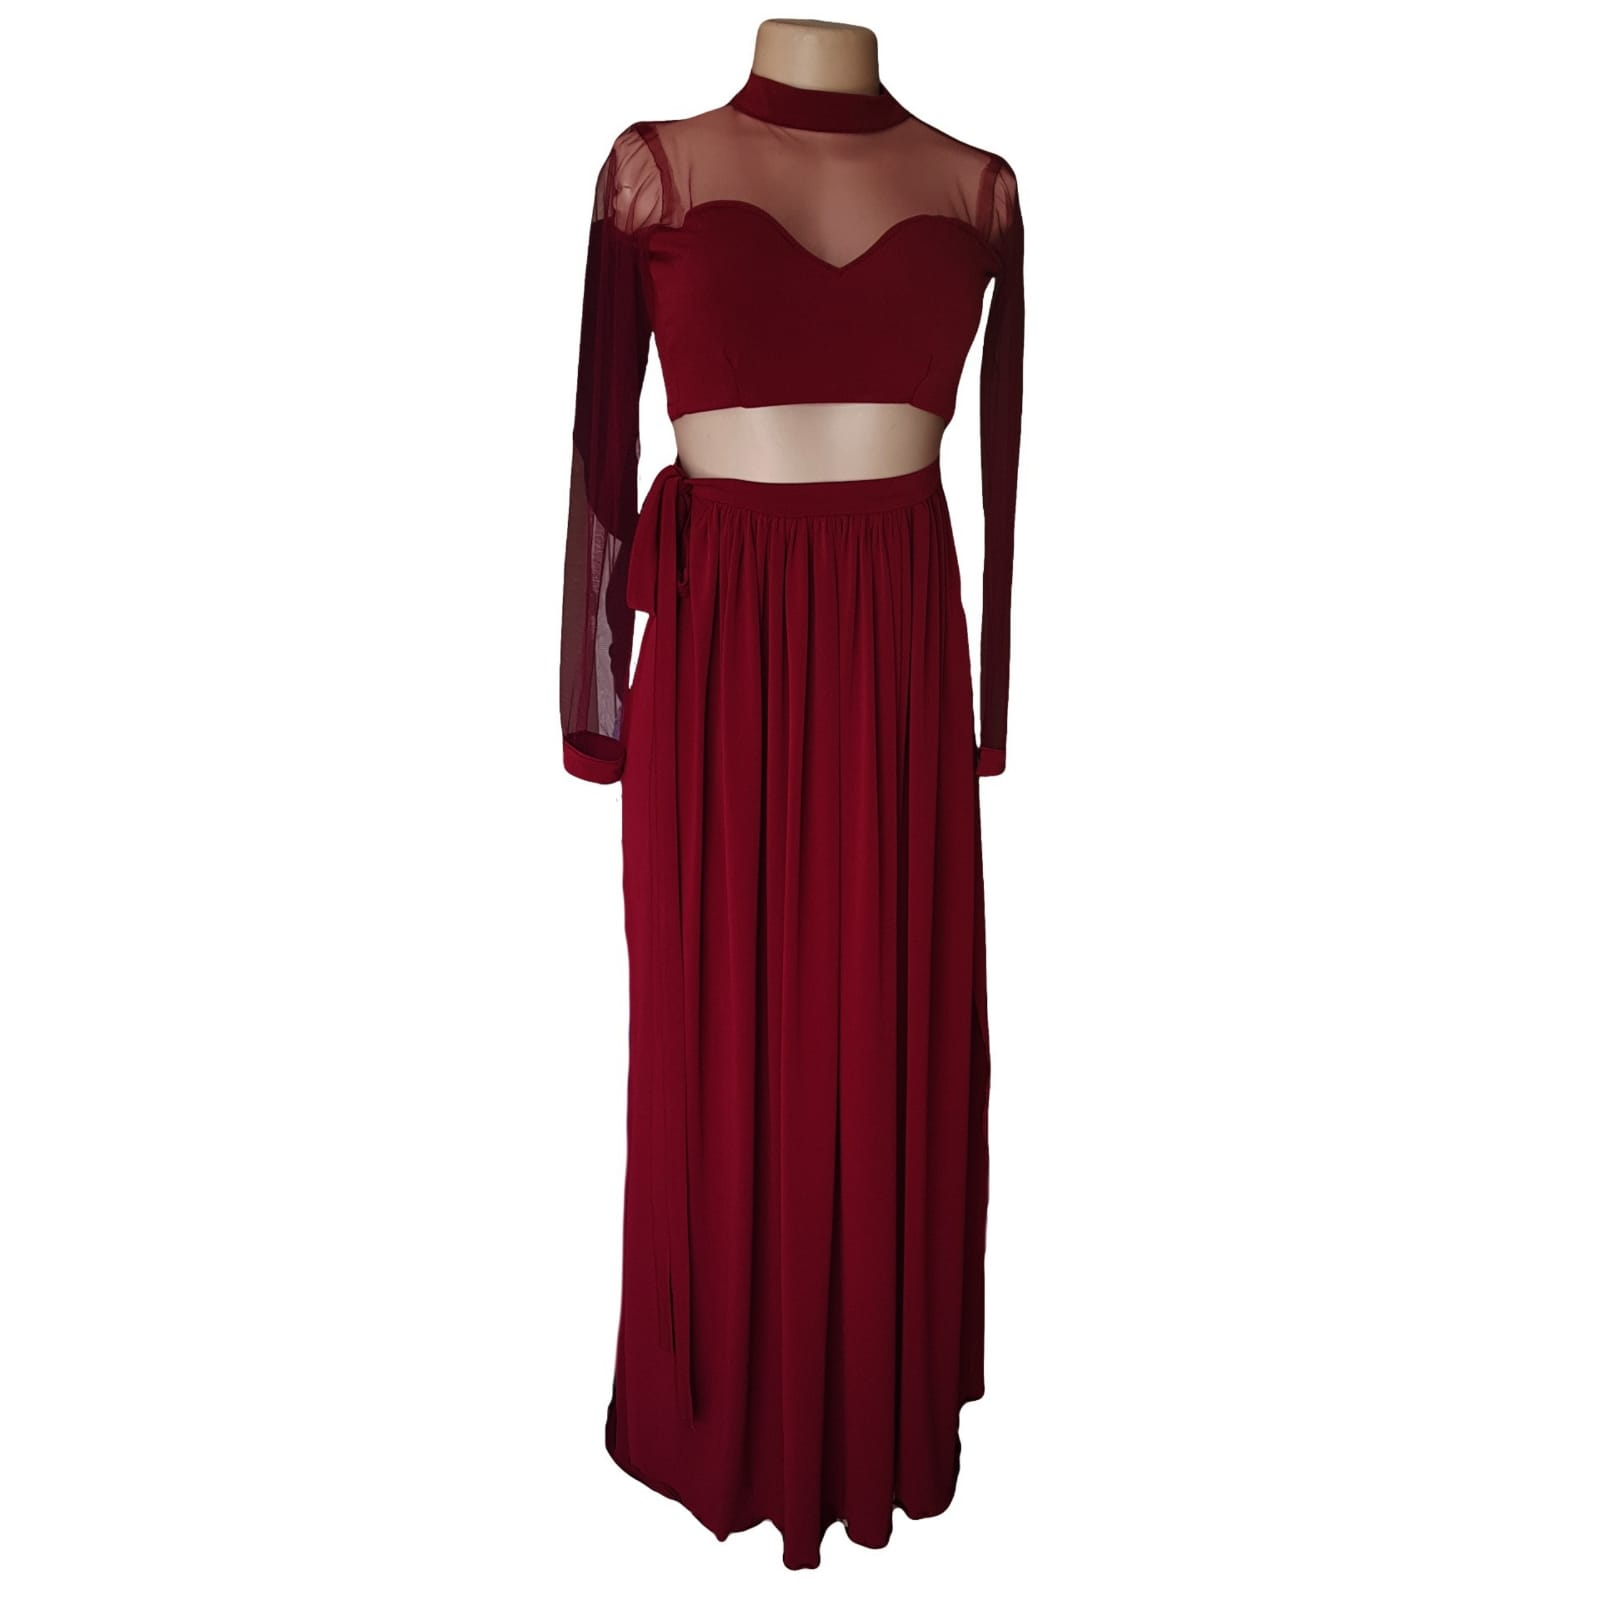 Maroon 2 piece long prom dress with a gathered skirt 4 maroon 2 piece long prom dress with a gathered skirt. With a slit and belt with tie up bow detail. Crop top, sheer sleeves and neckline creating a choker.